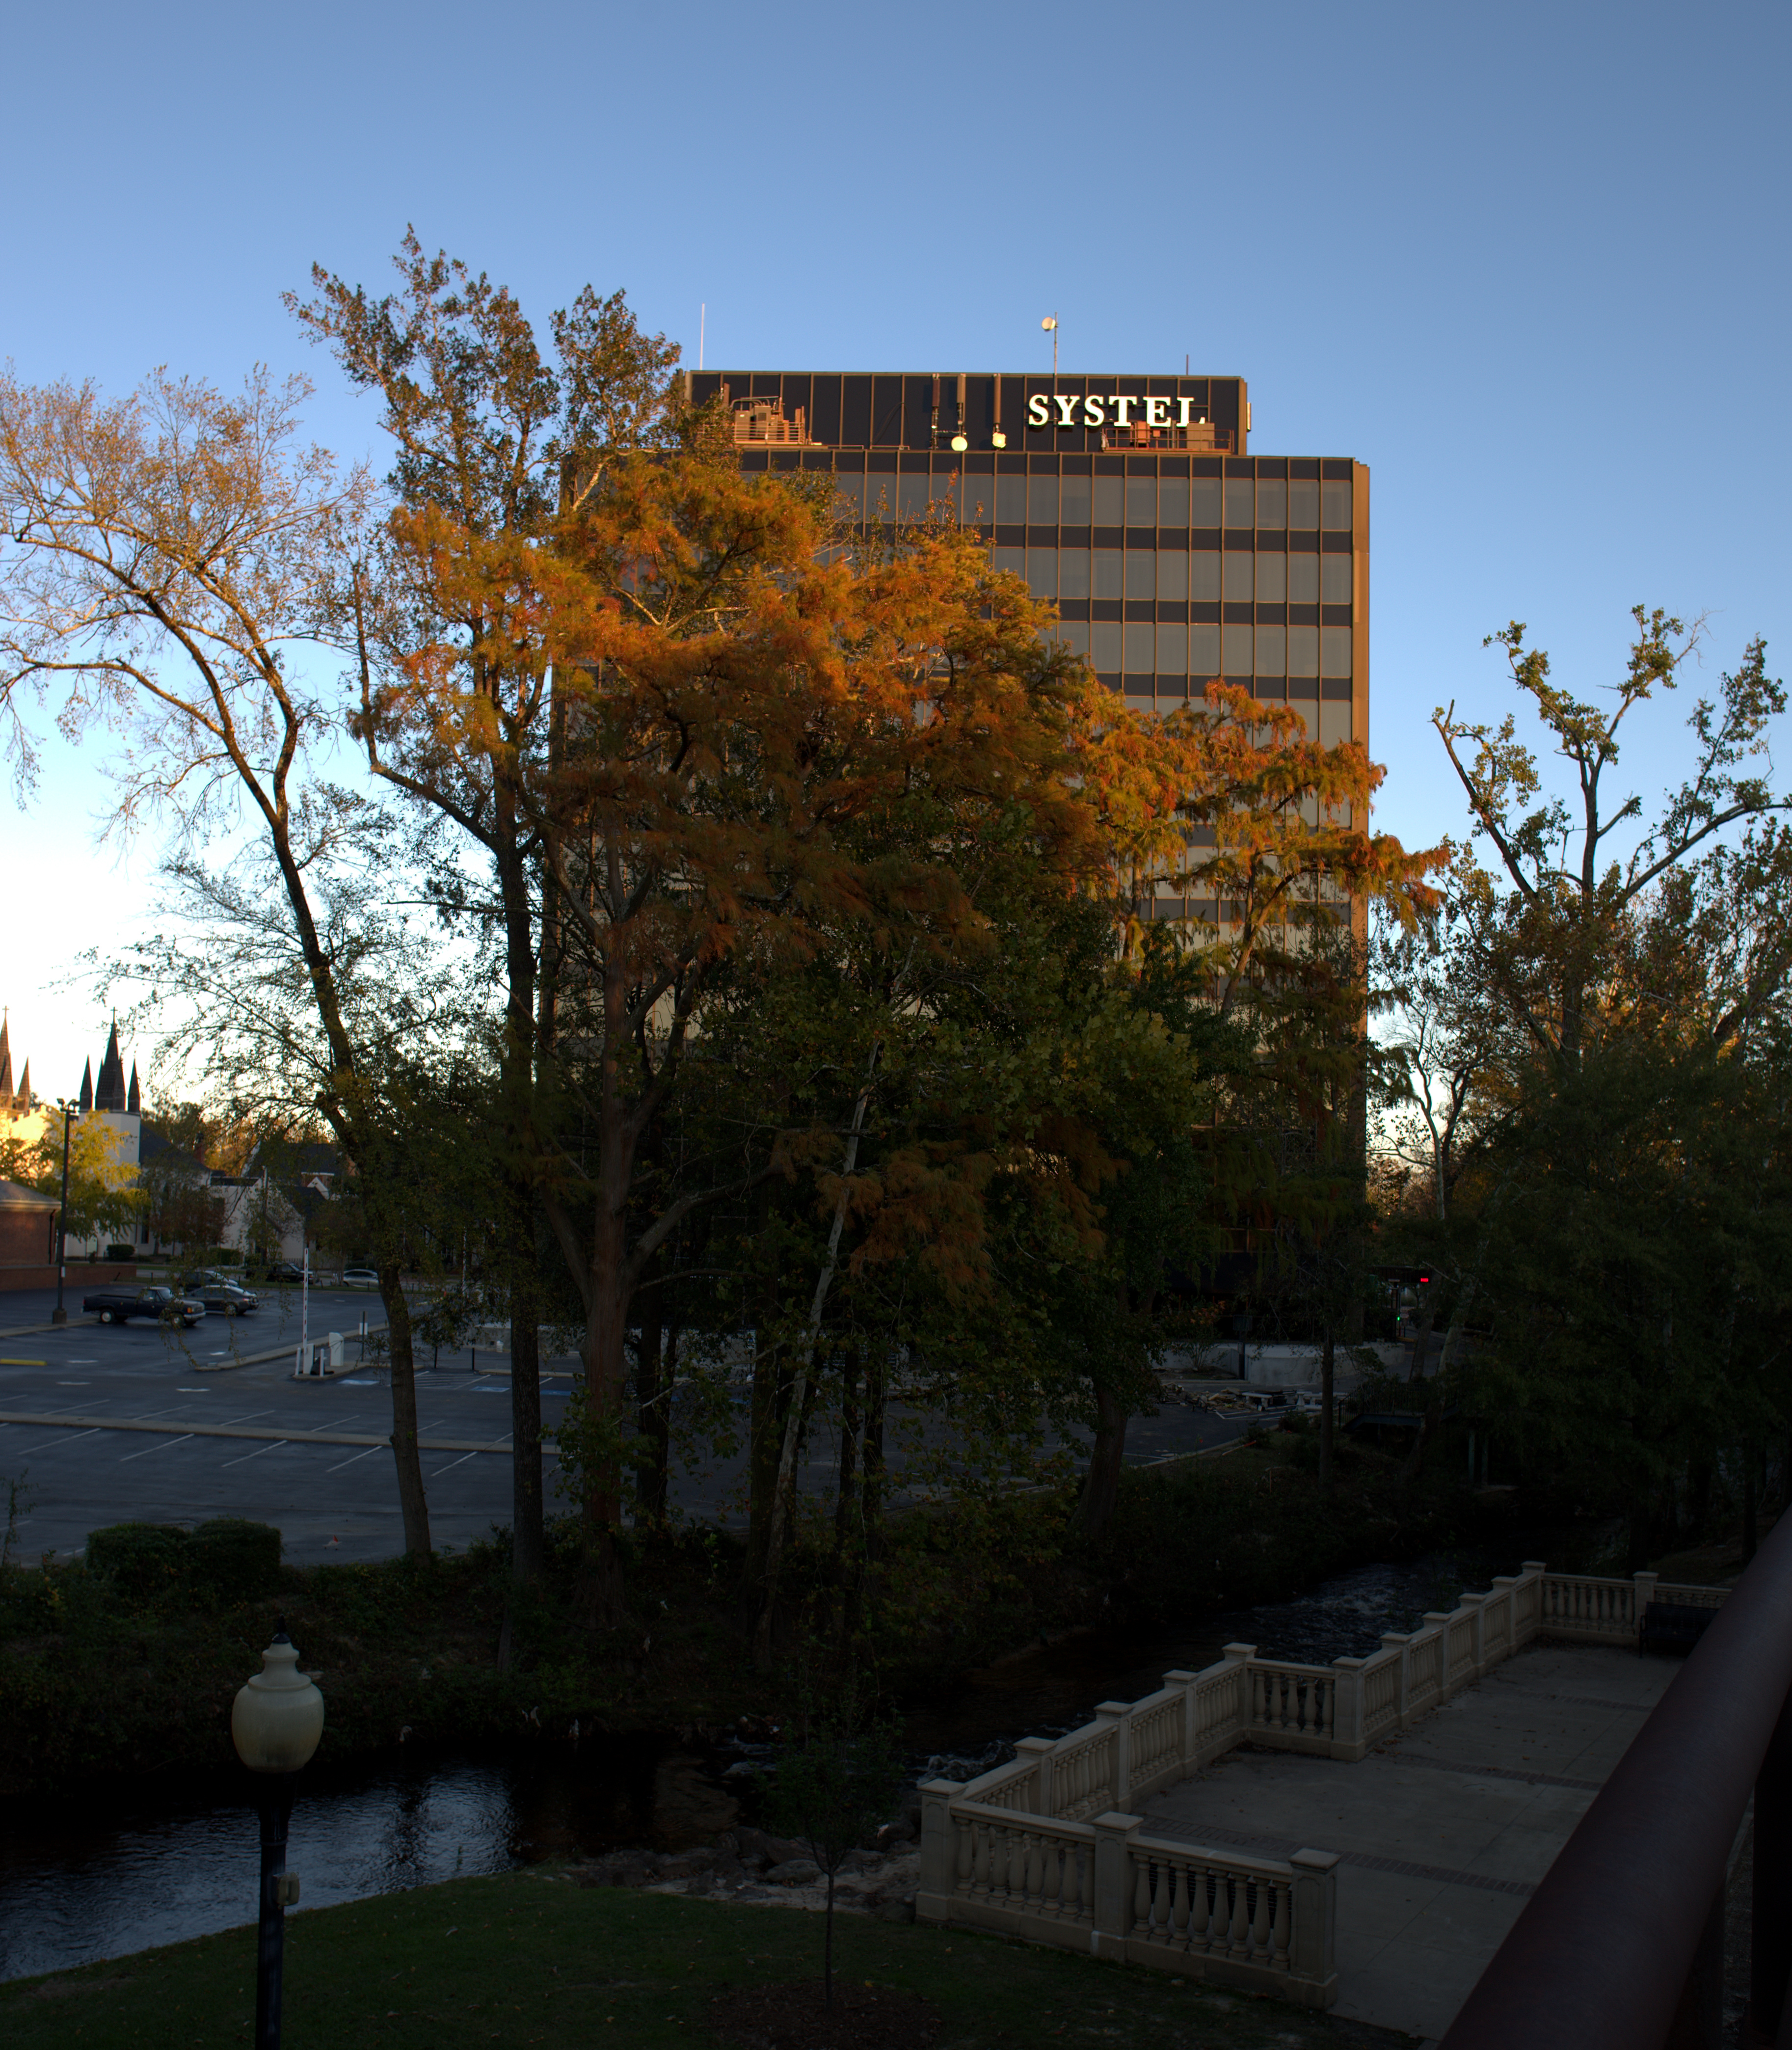 Photography ~ Around Sunset–Downtown Fayetteville, NC [The Systel Building], 11/10